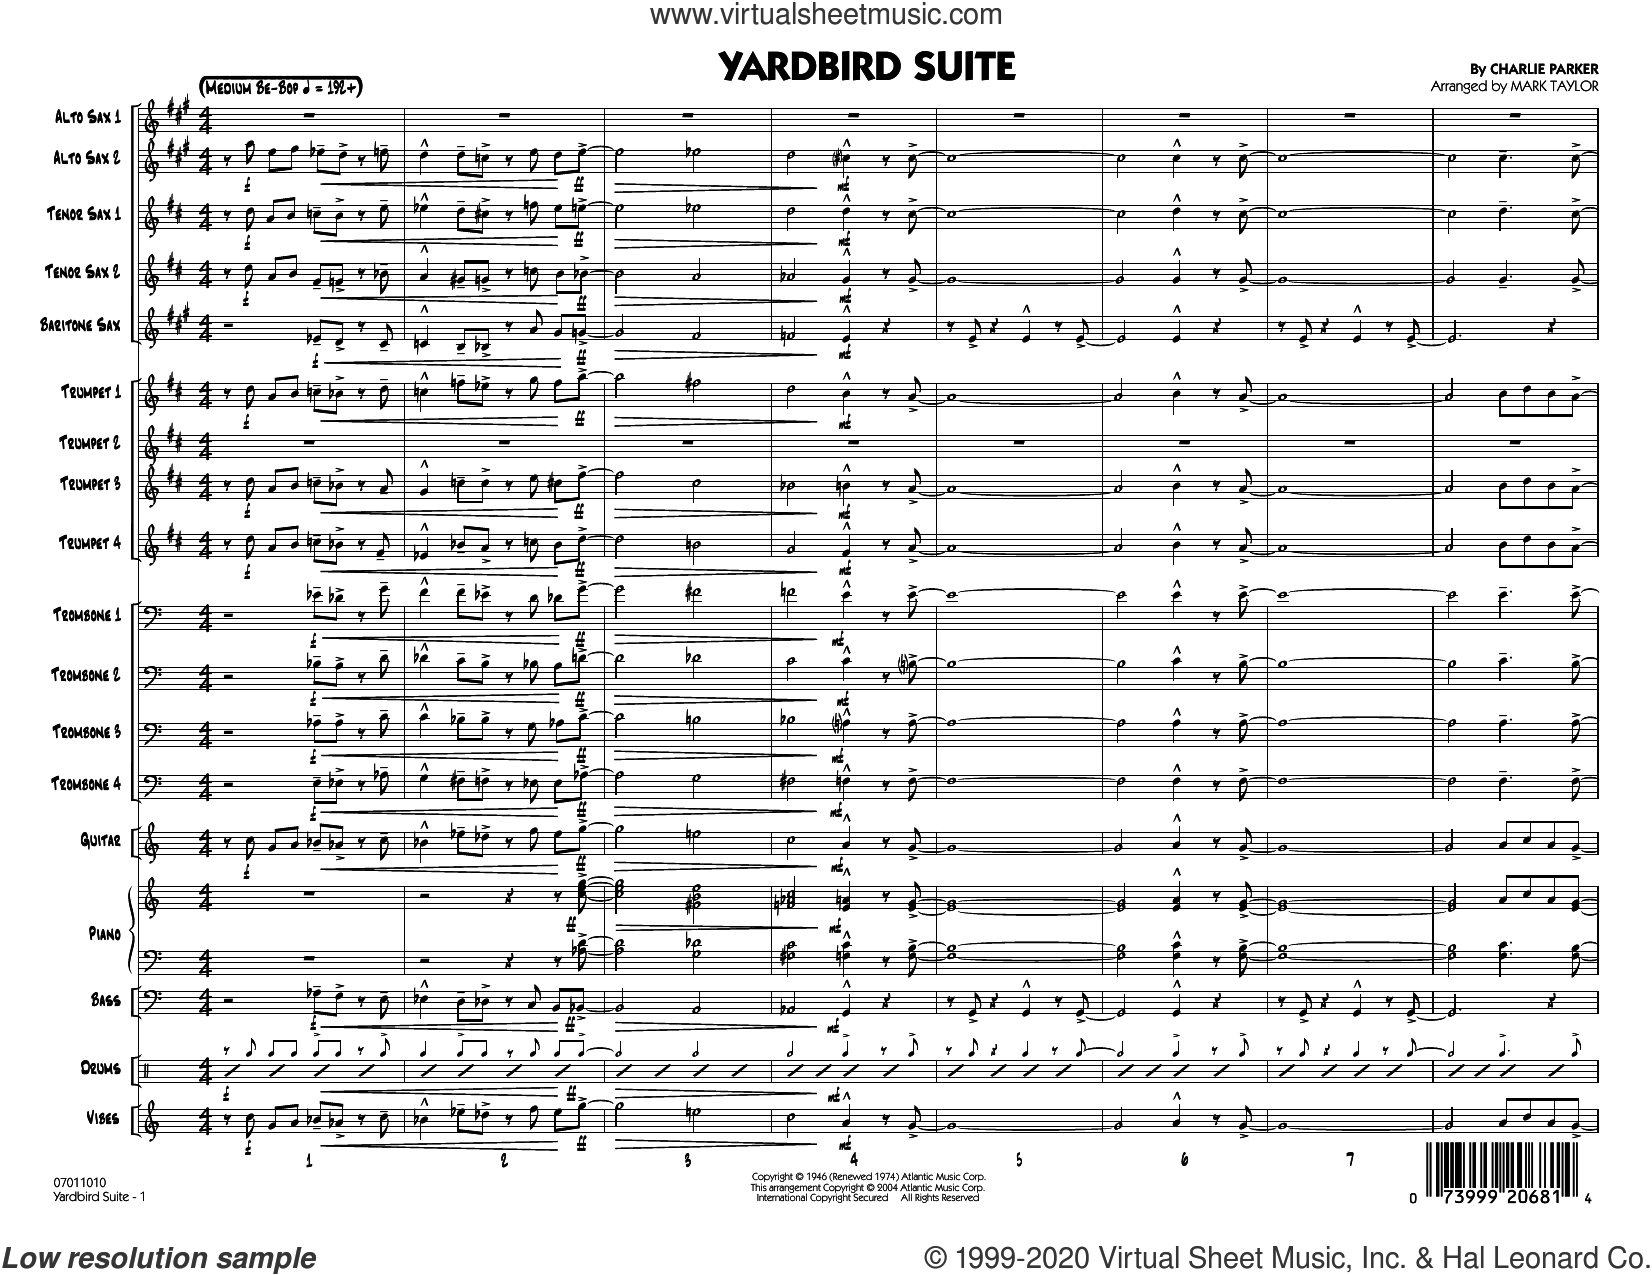 Yardbird Suite (arr. Mark Taylor) (COMPLETE) sheet music for jazz band by Charlie Parker and Mark Taylor, intermediate skill level